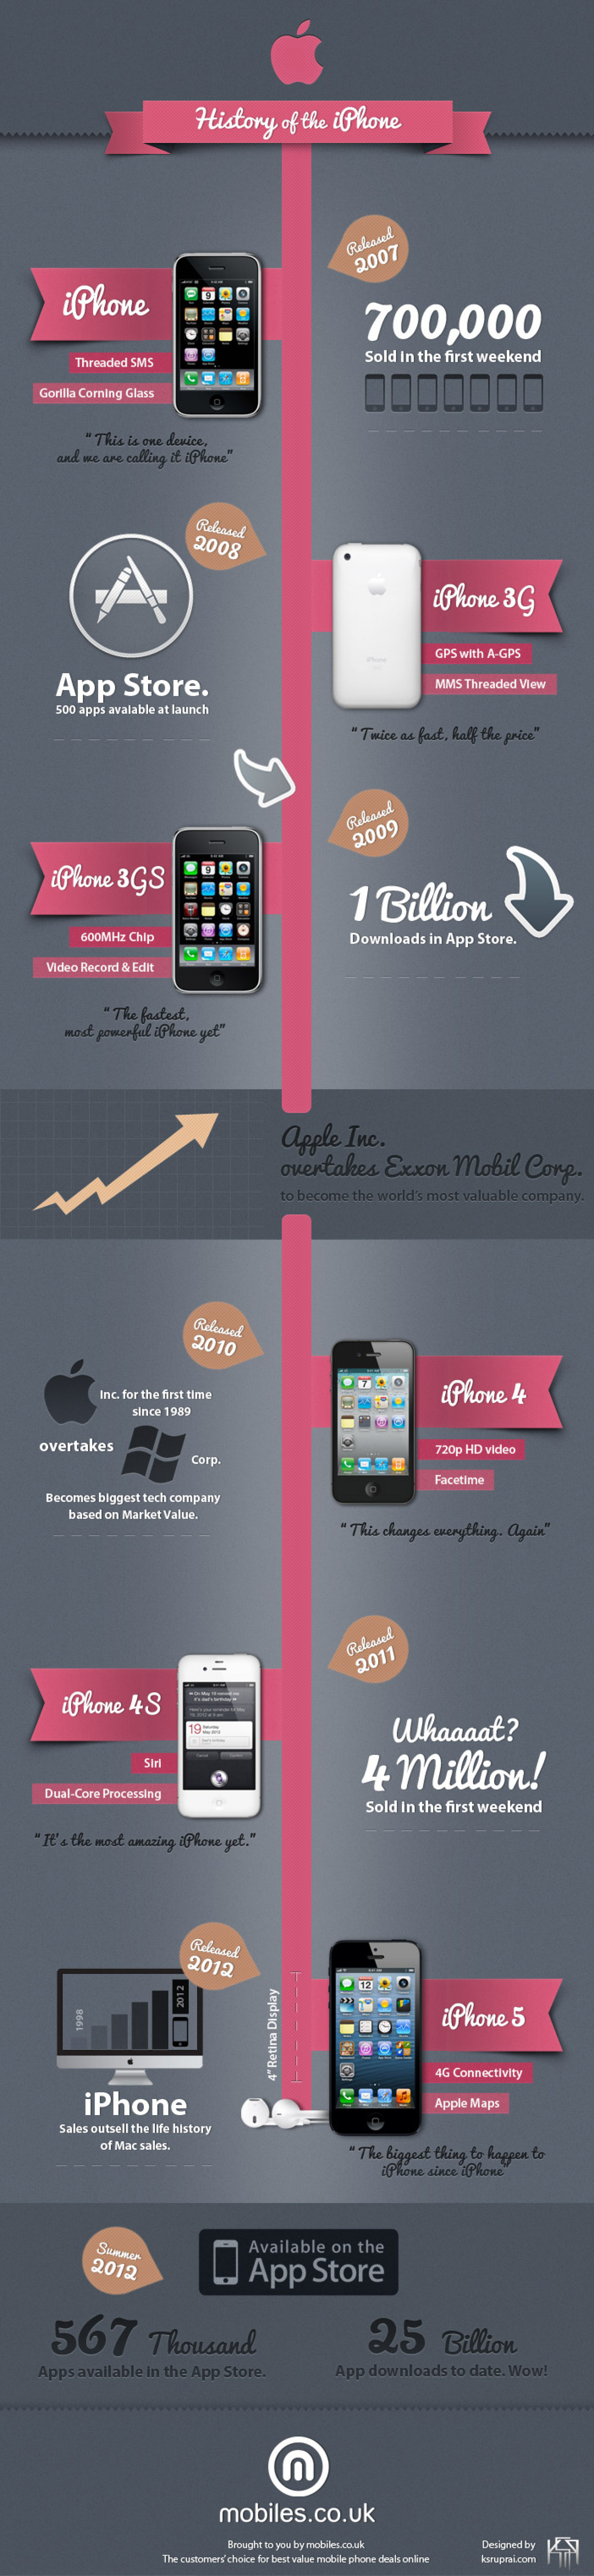 History of the iPhone Infographic